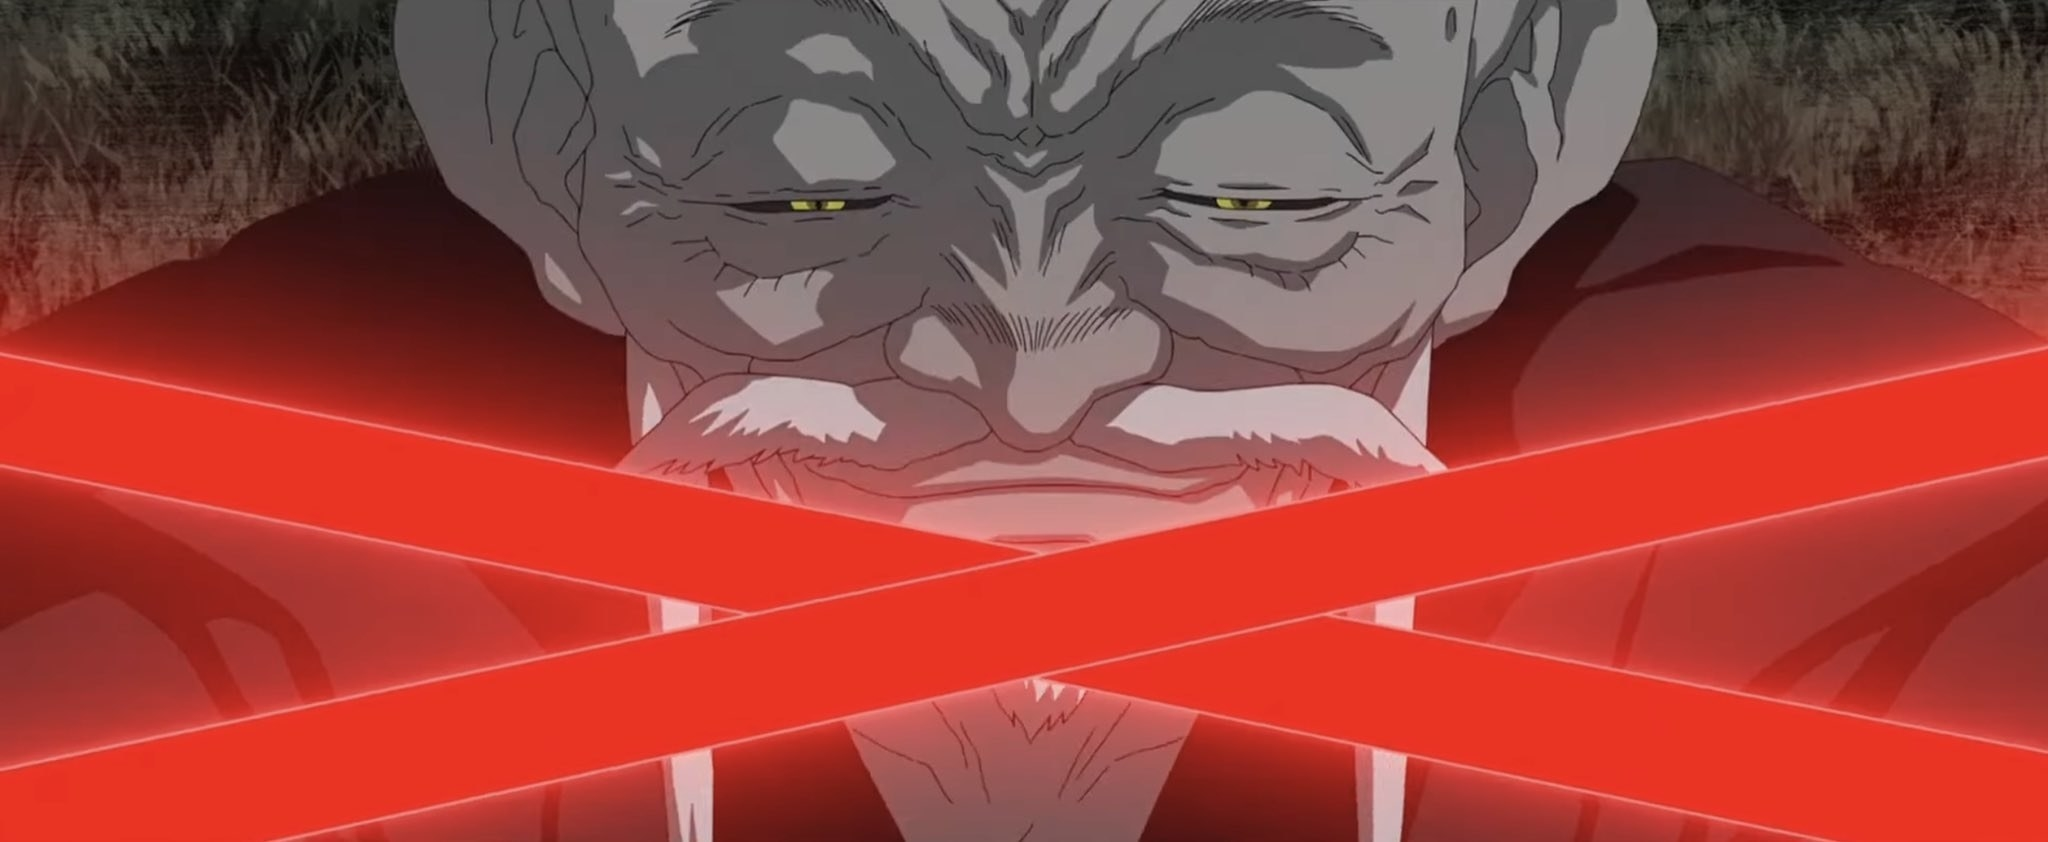 Old man anime character smirks with two red lightsabers crossing his face